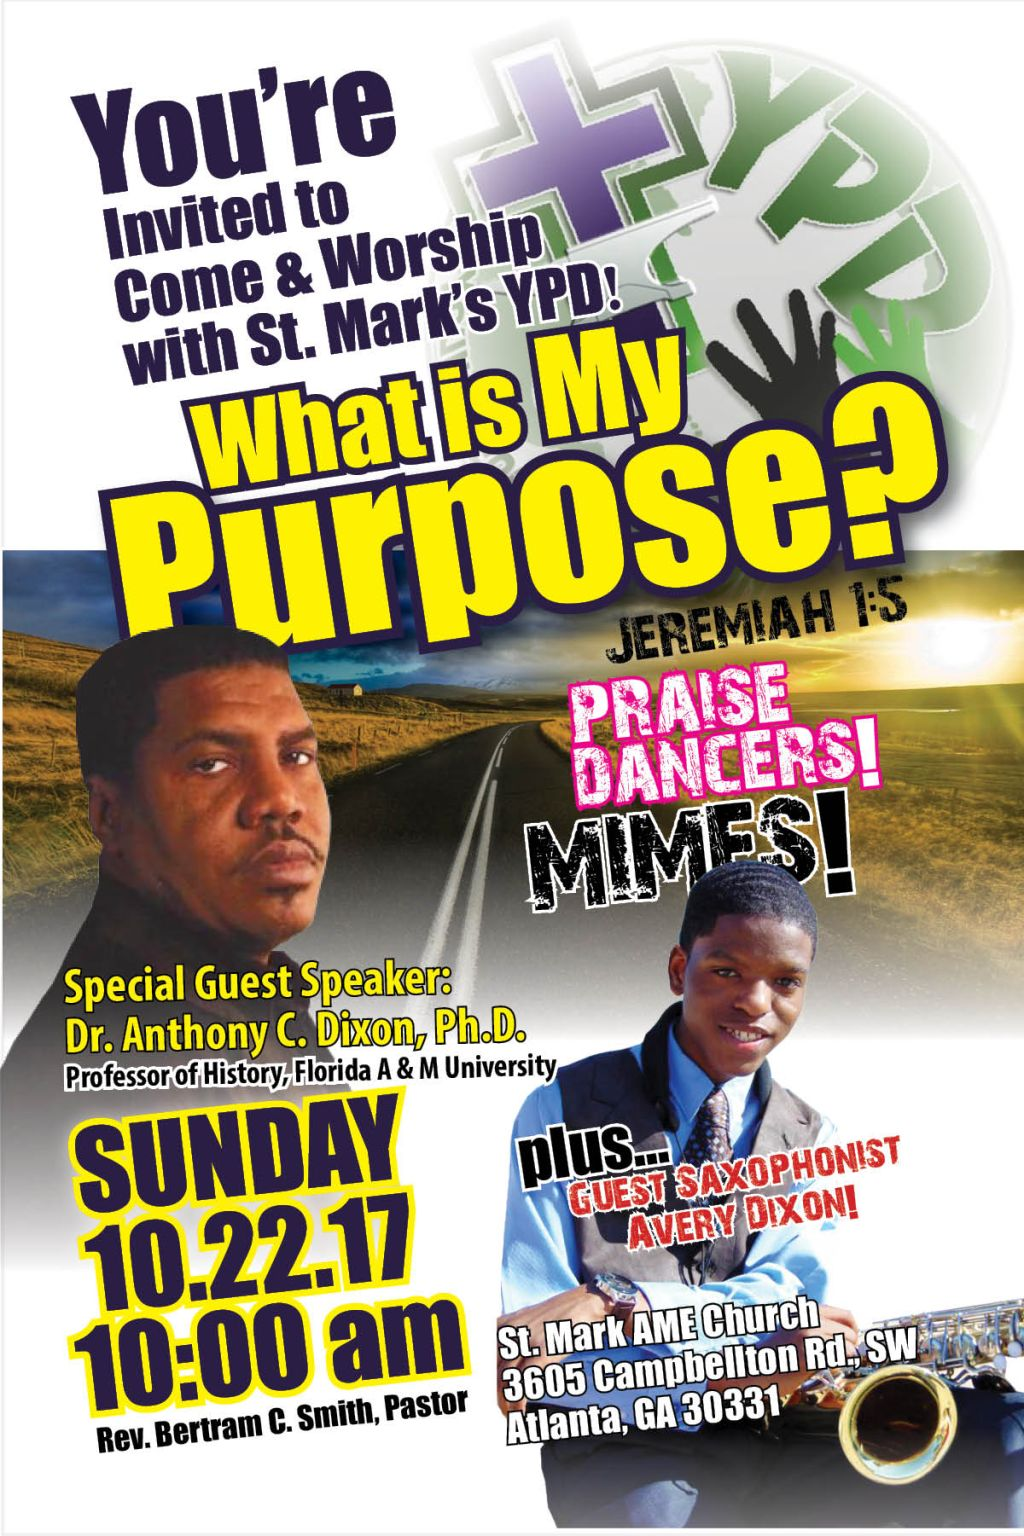 St. Mark's YPD: What Is My Purpose